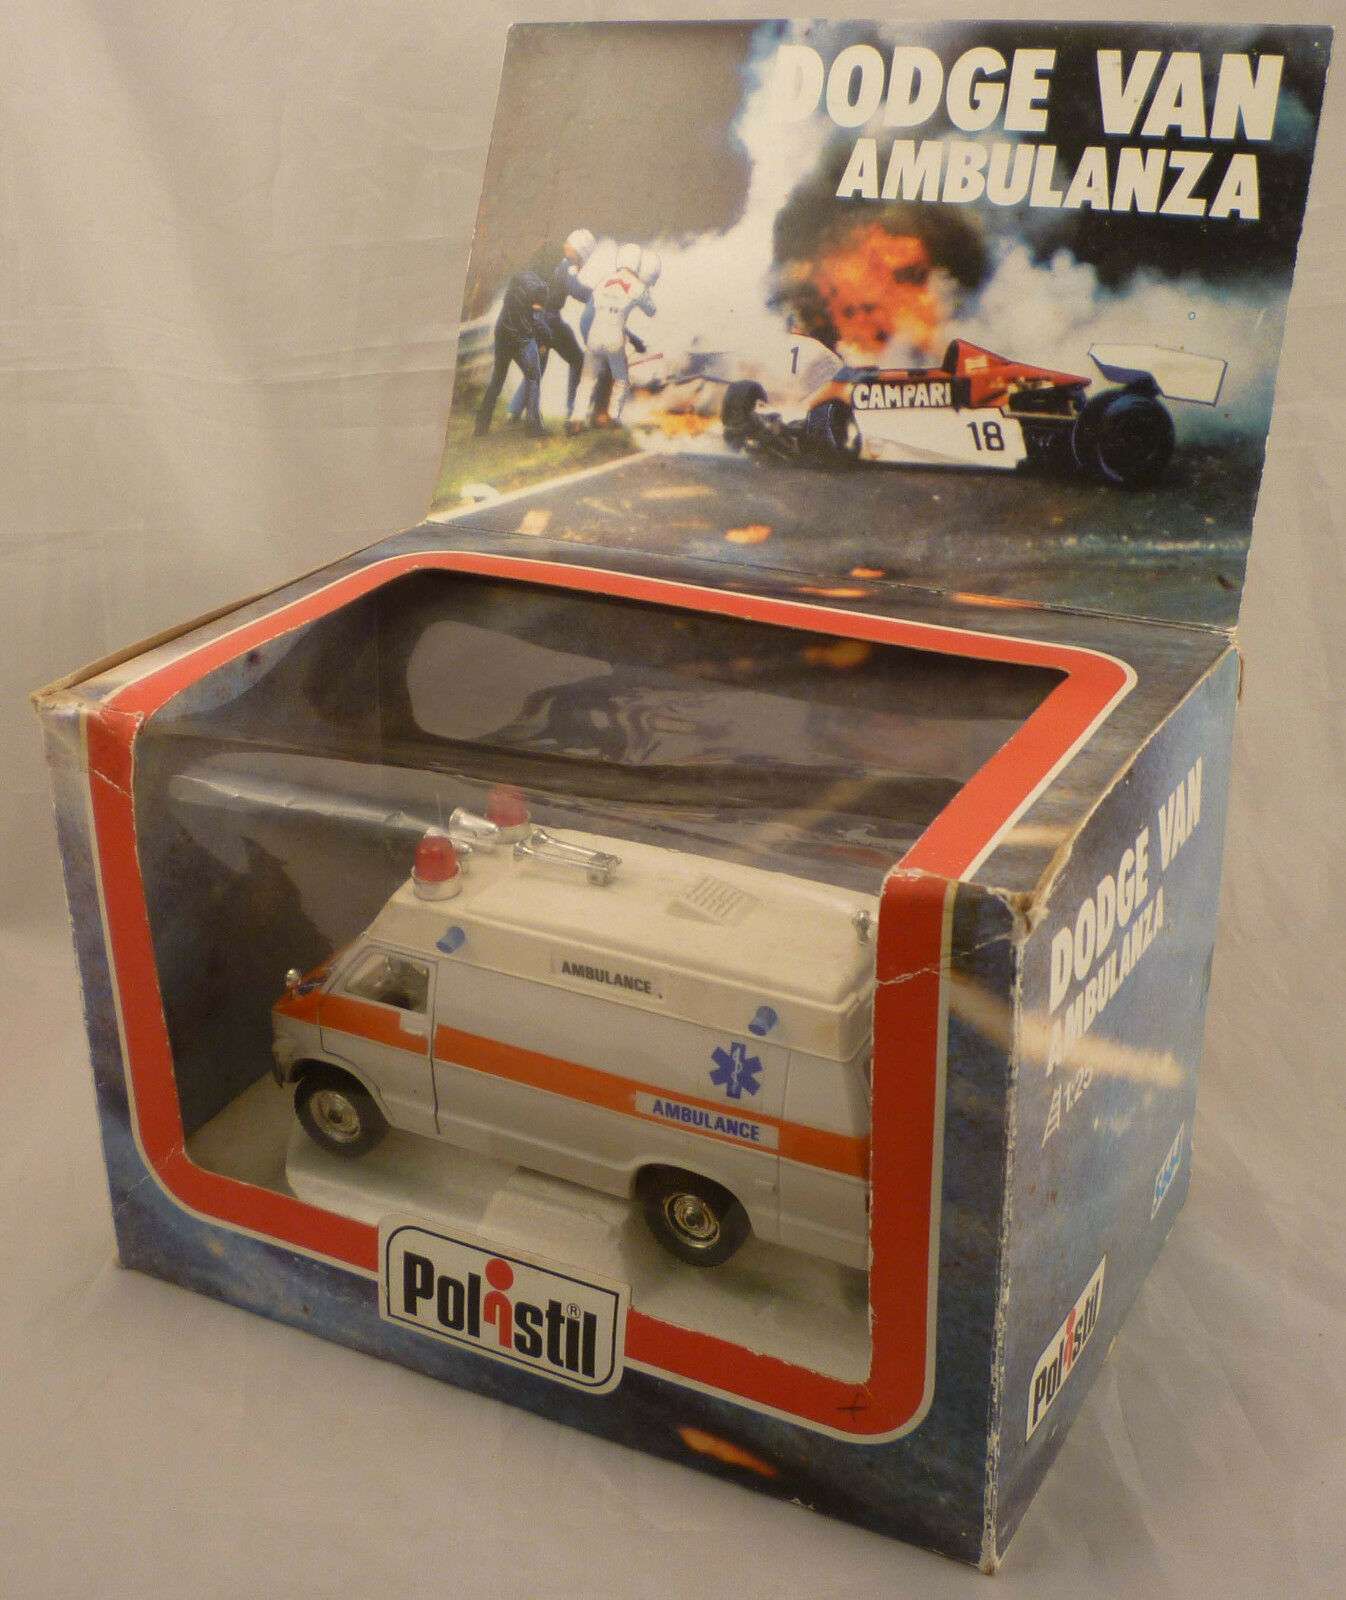 Polistil DODGE VAN AMBULANCE S664 die cast 1 25 scale model Niki Lauda 1976